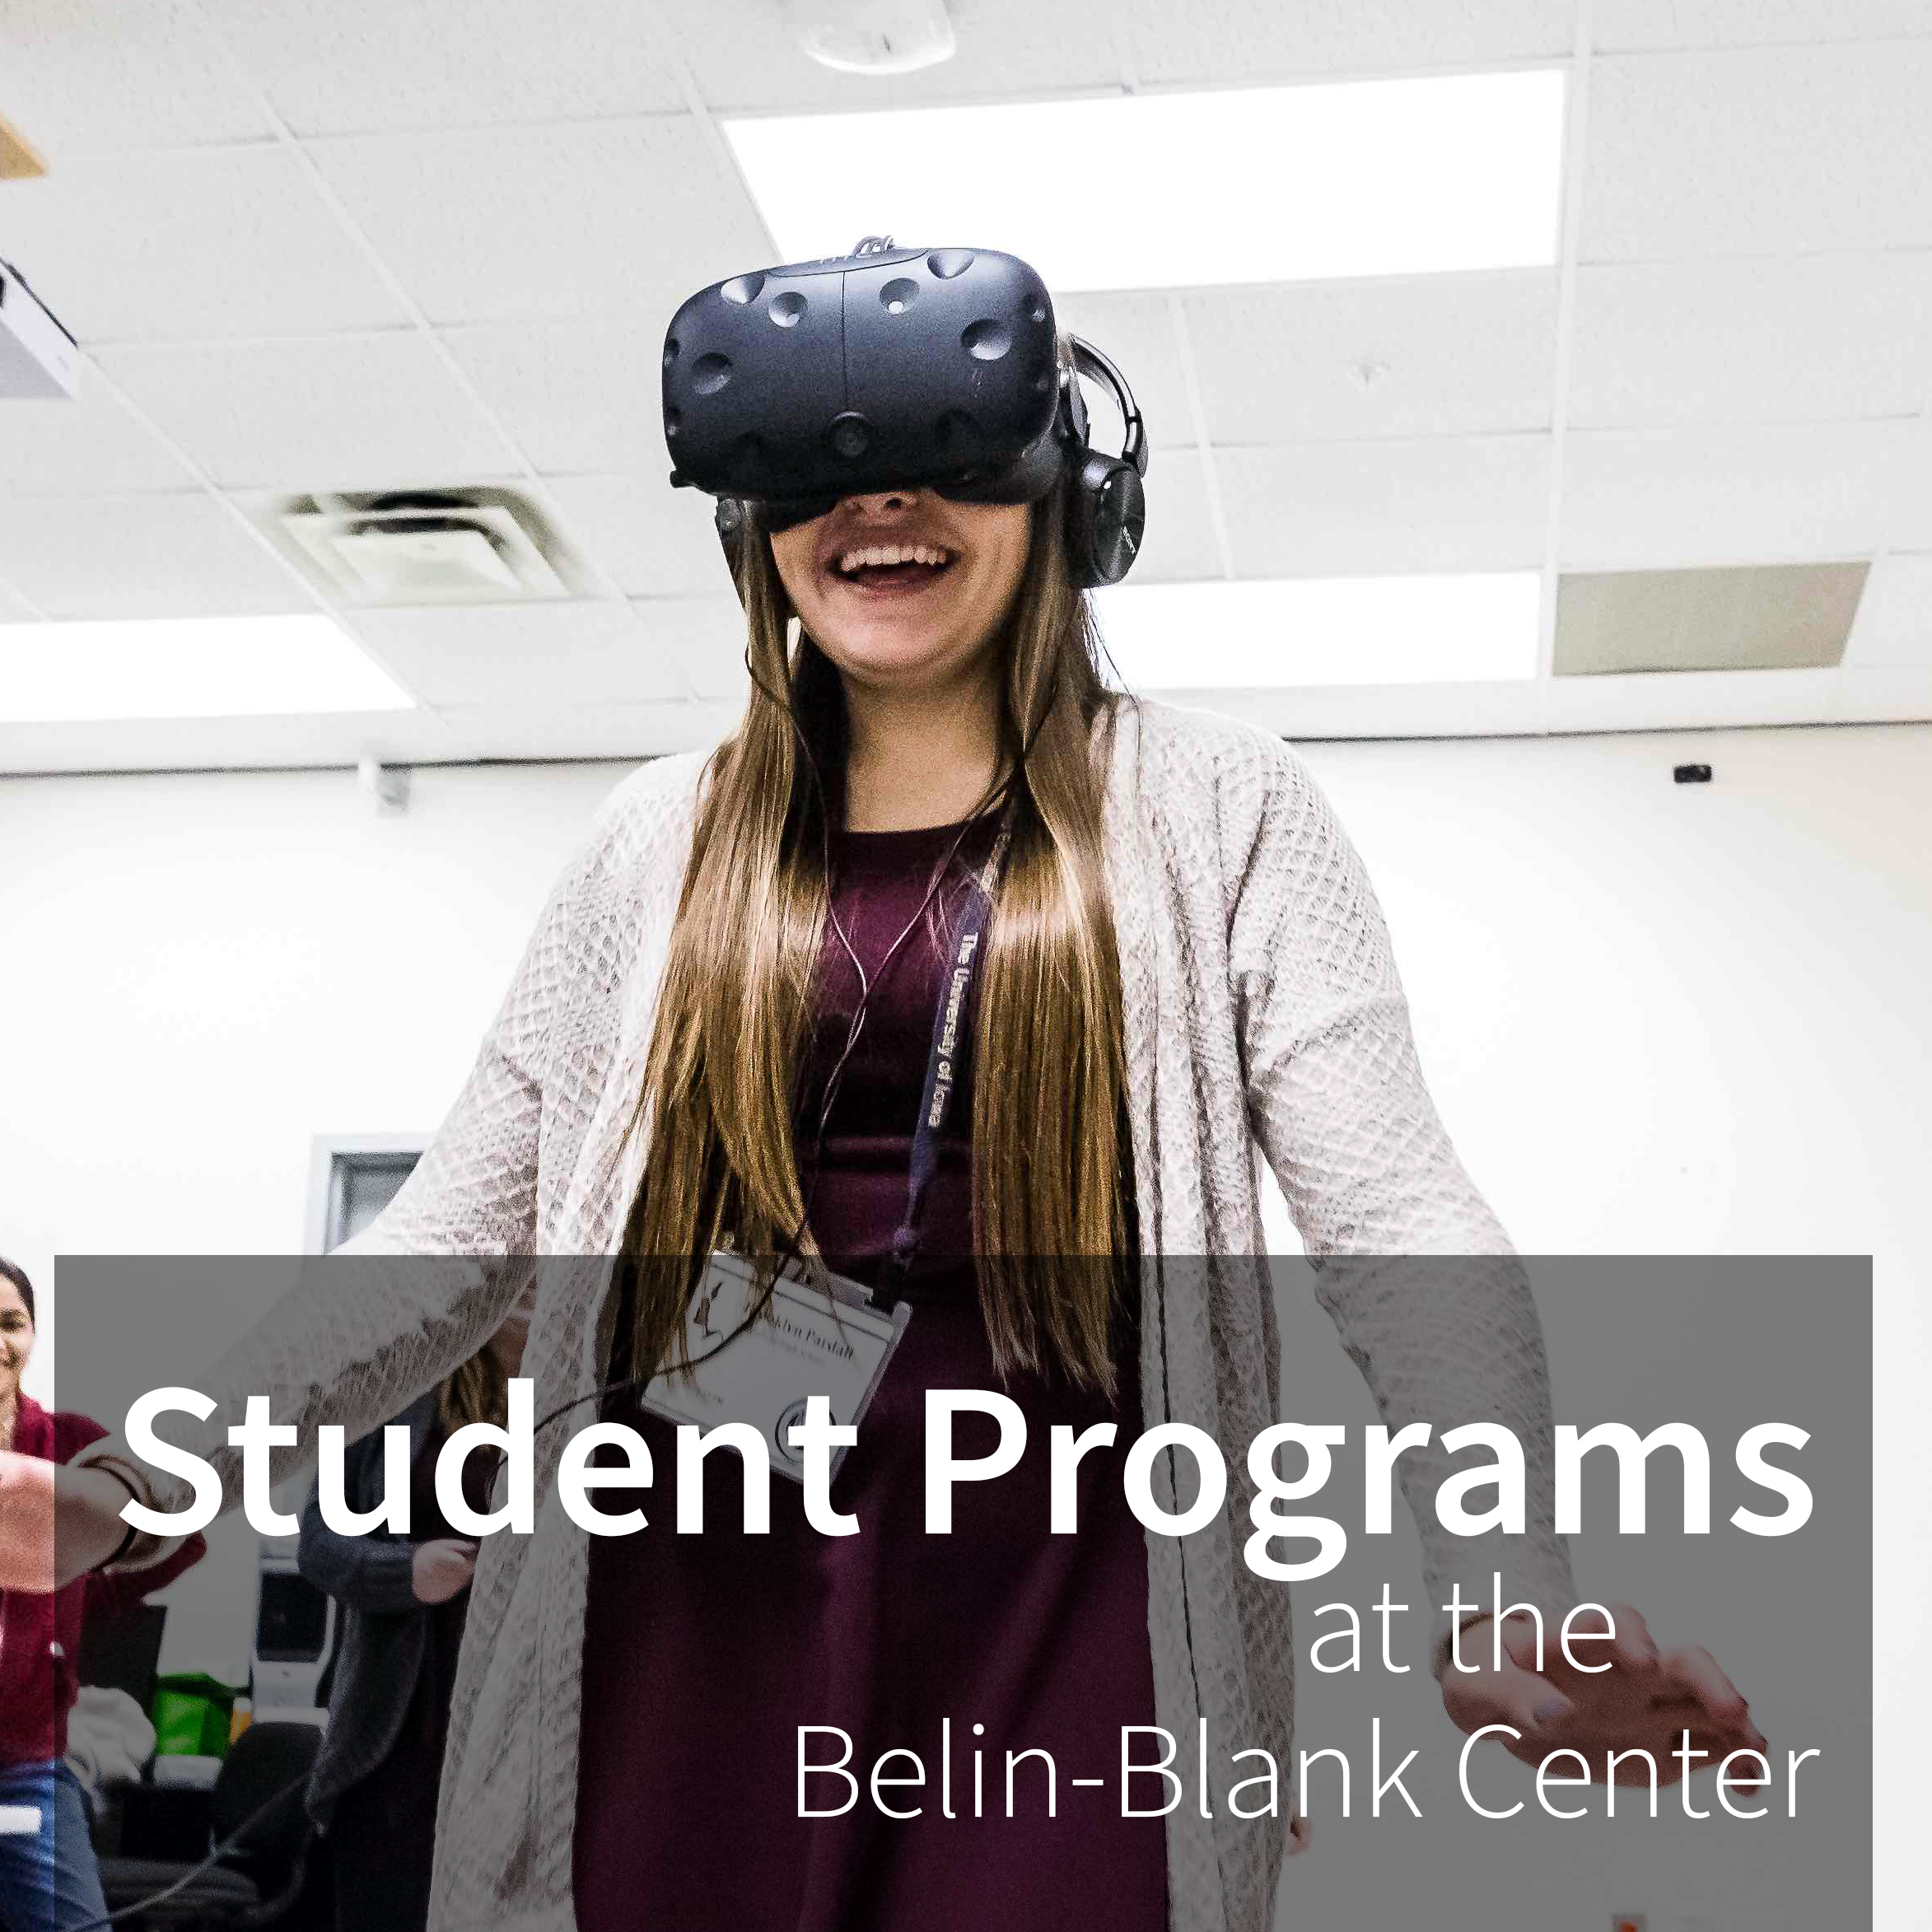 Student Programs at the Belin-Blank Center